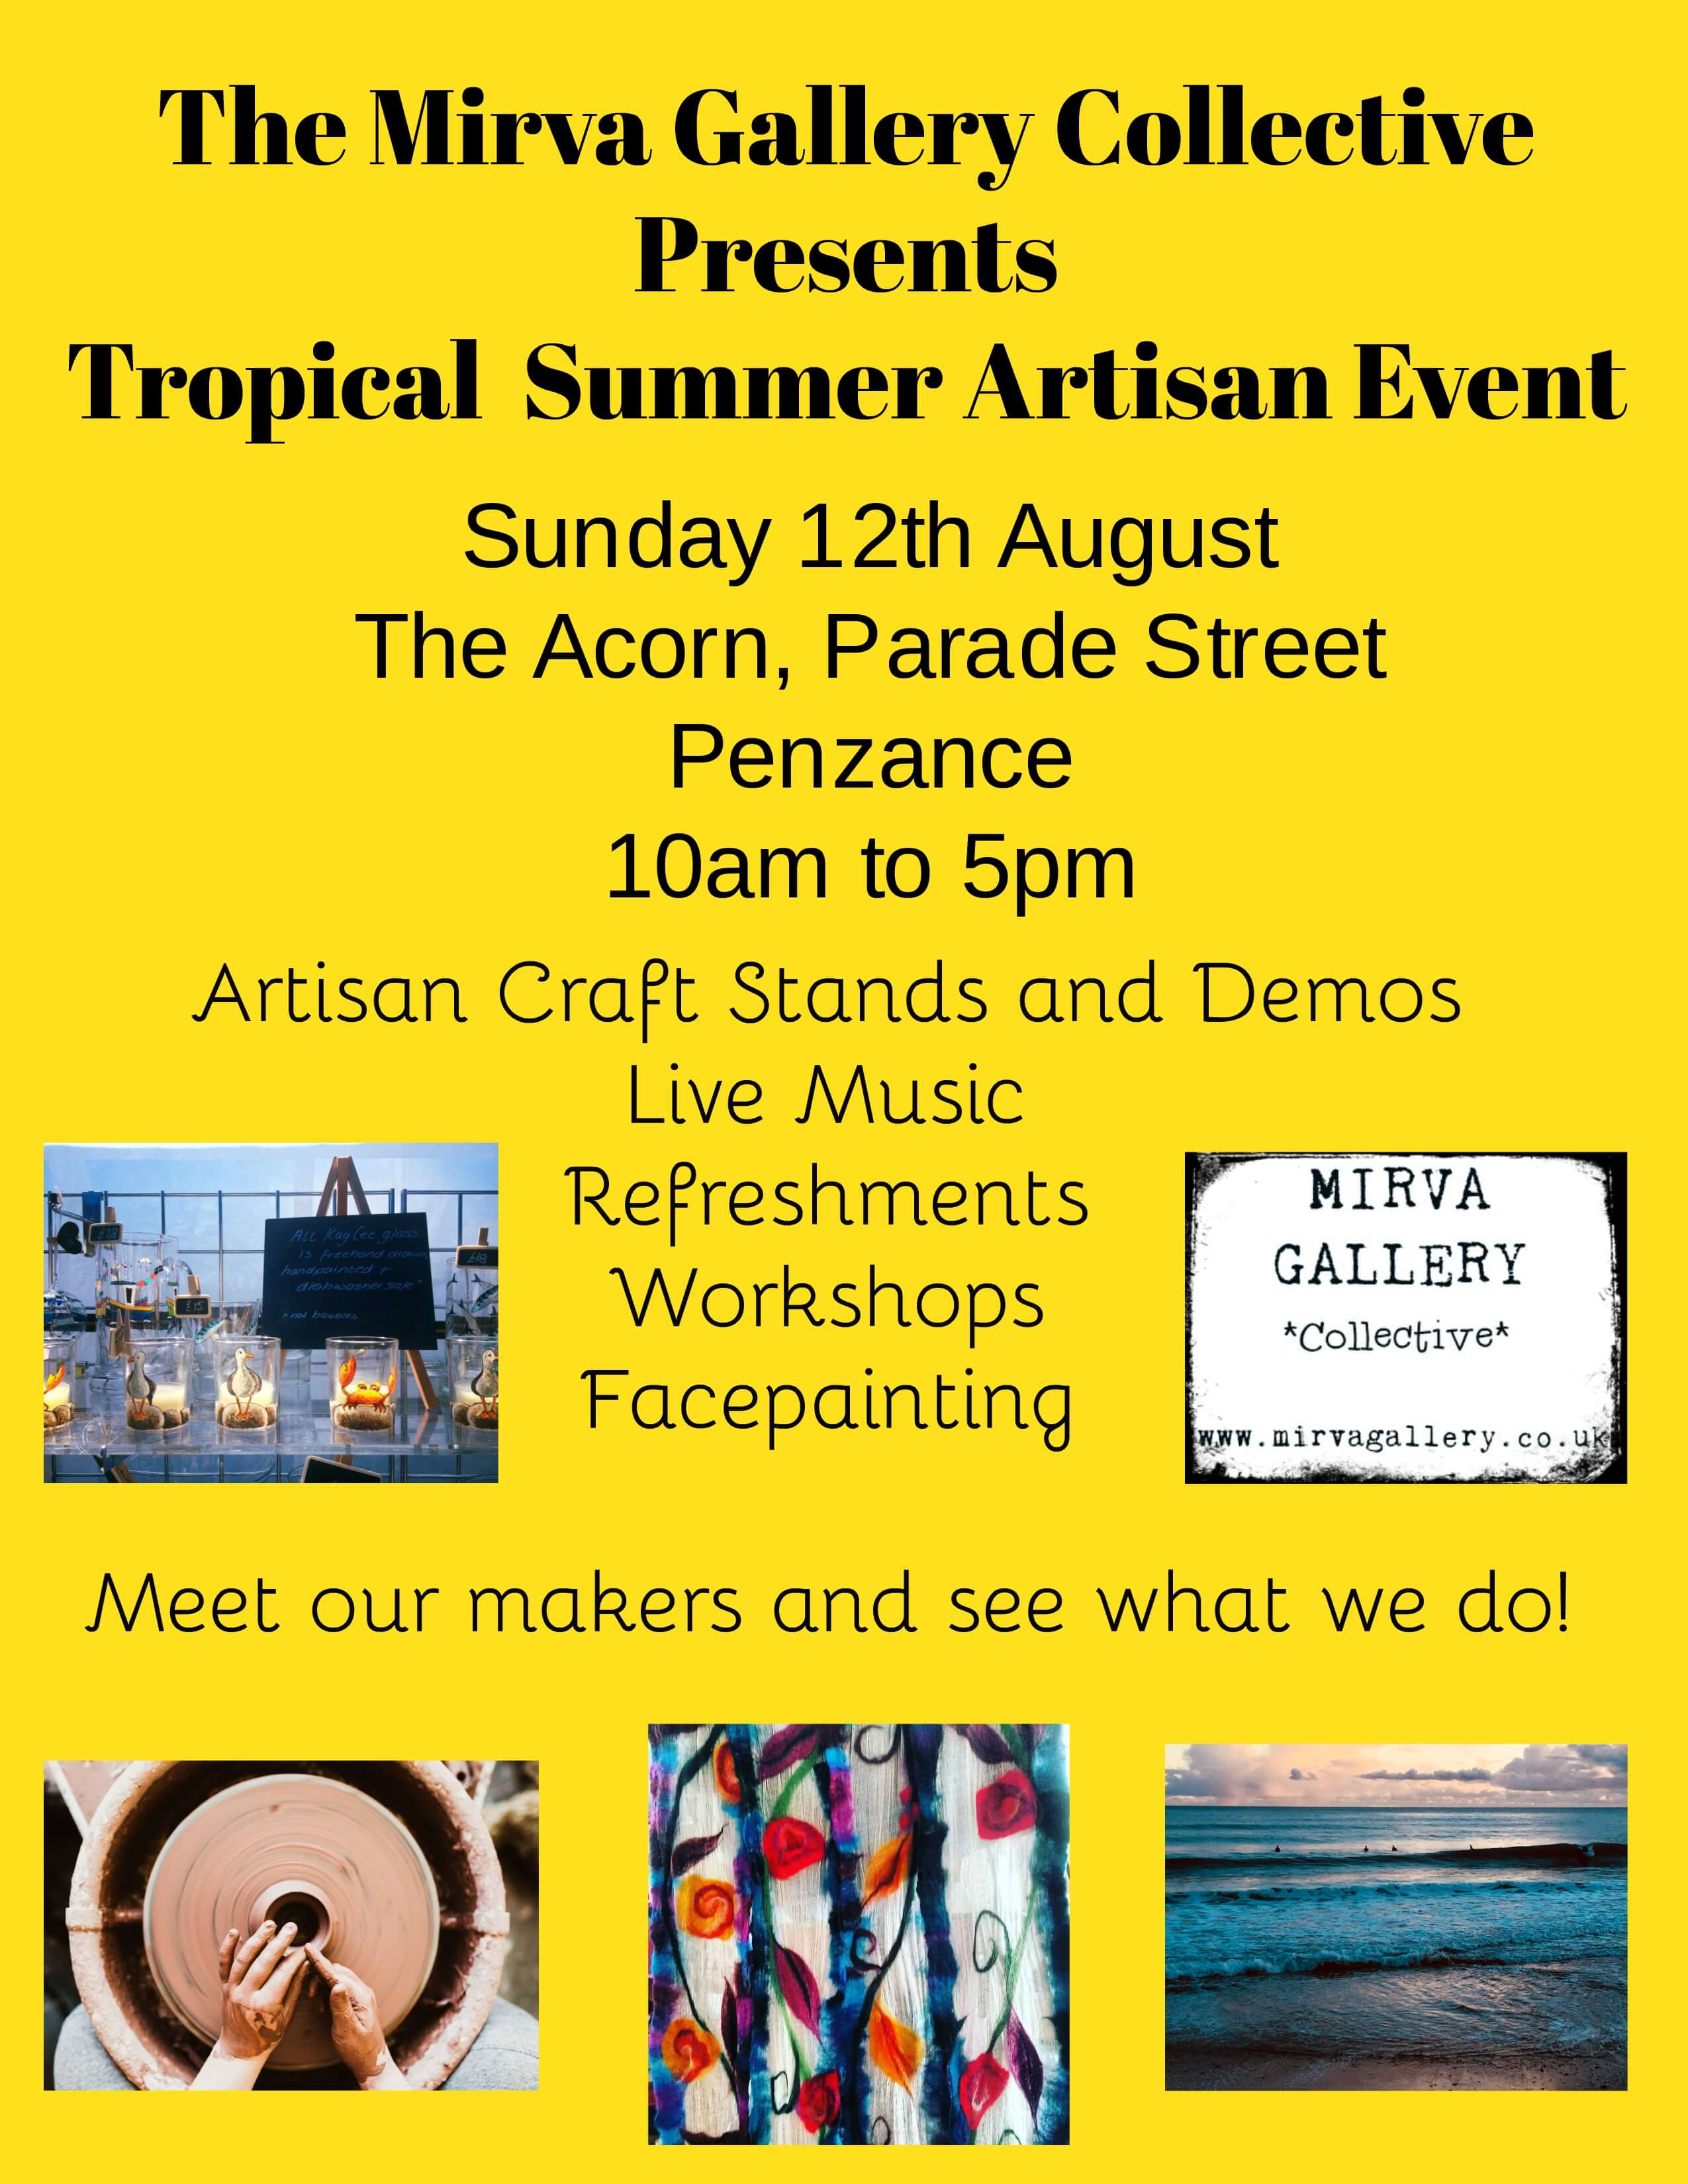 The Mirva Gallery Collective Presents Tropical Summer Artisan Event